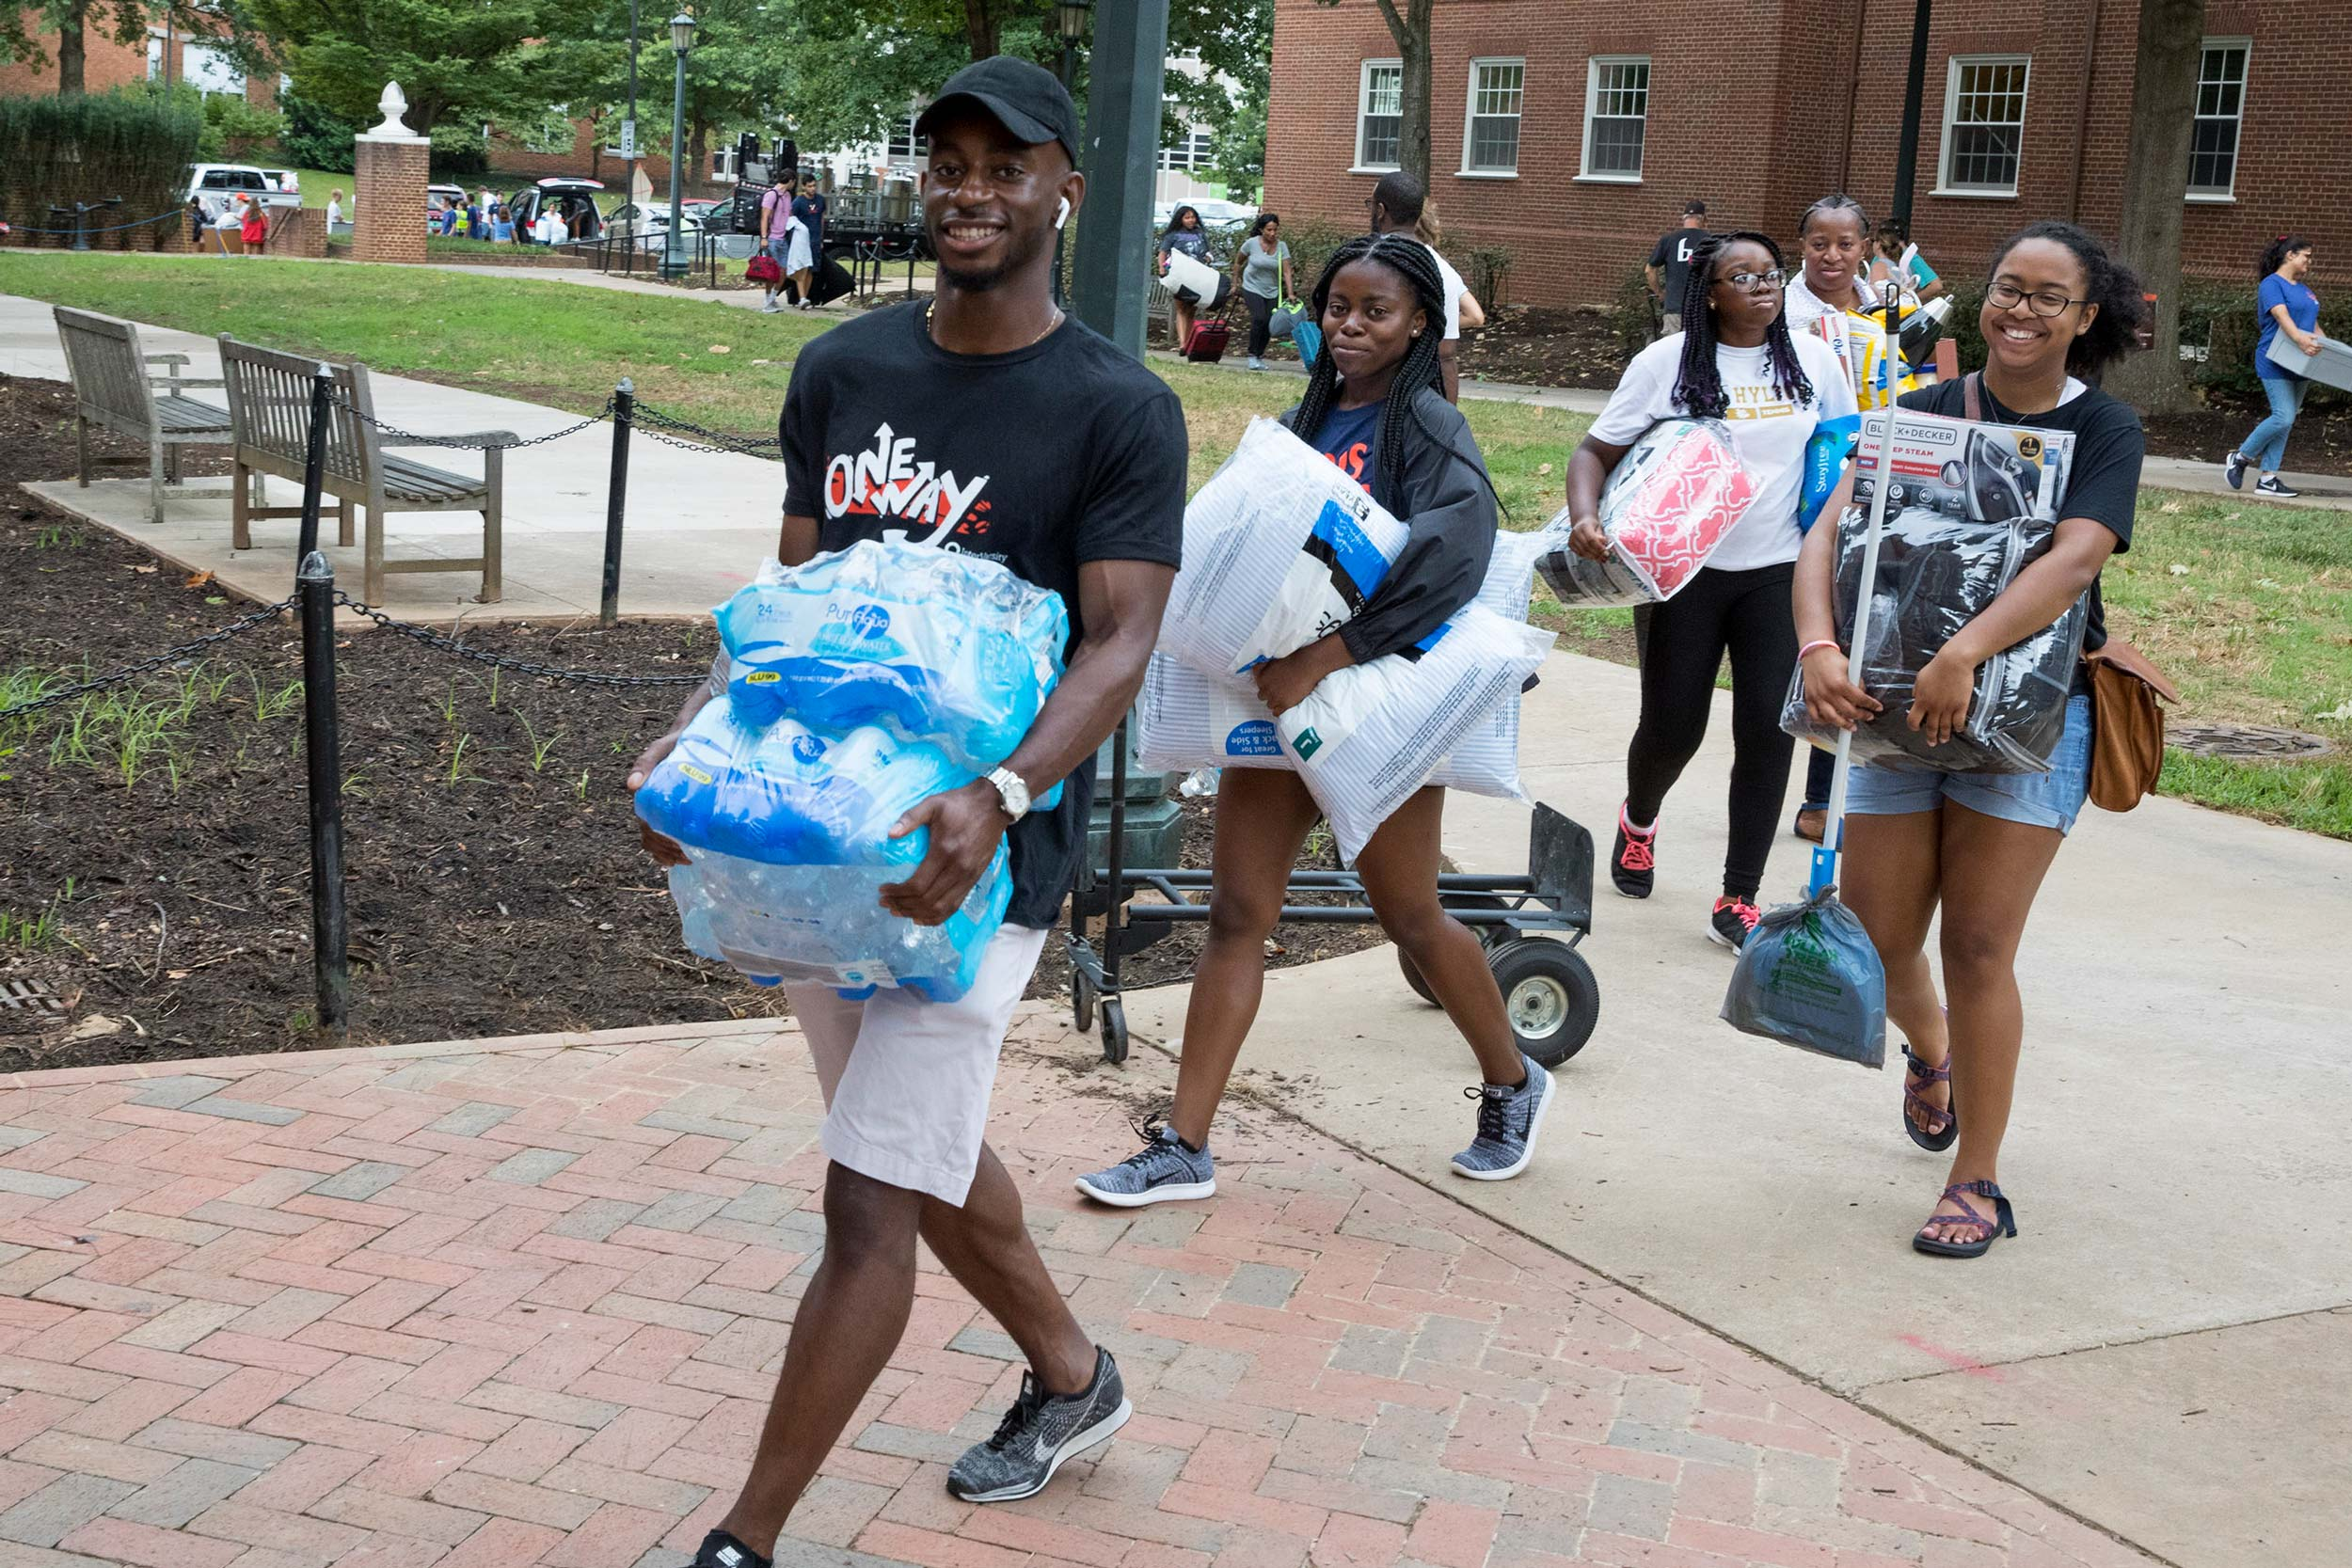 UVA's Grounds were abuzz Friday, the first day of move-in weekend. (Photos by Dan Addison, University Communications)